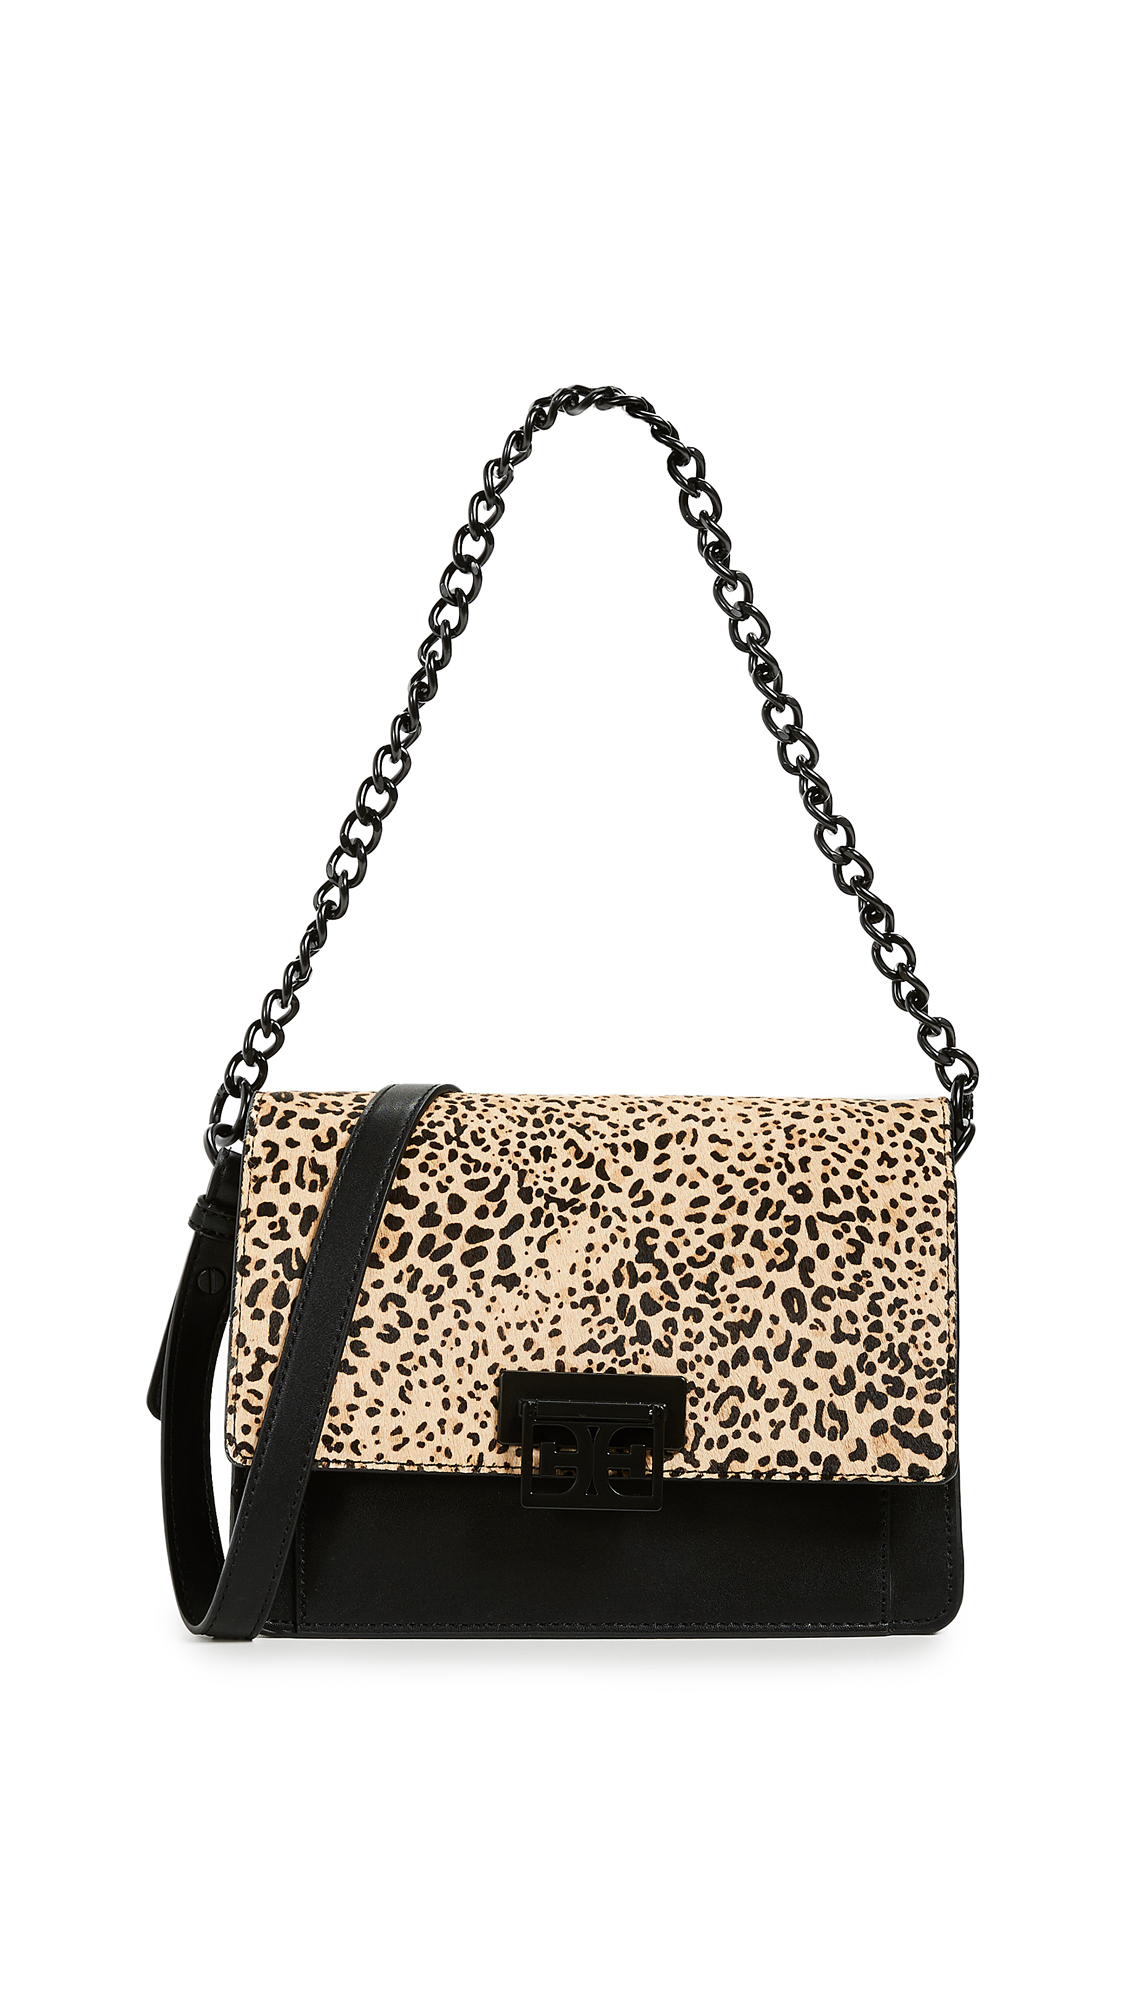 Sam Edelman Paislee Small Messenger Bag In Black/Leopard